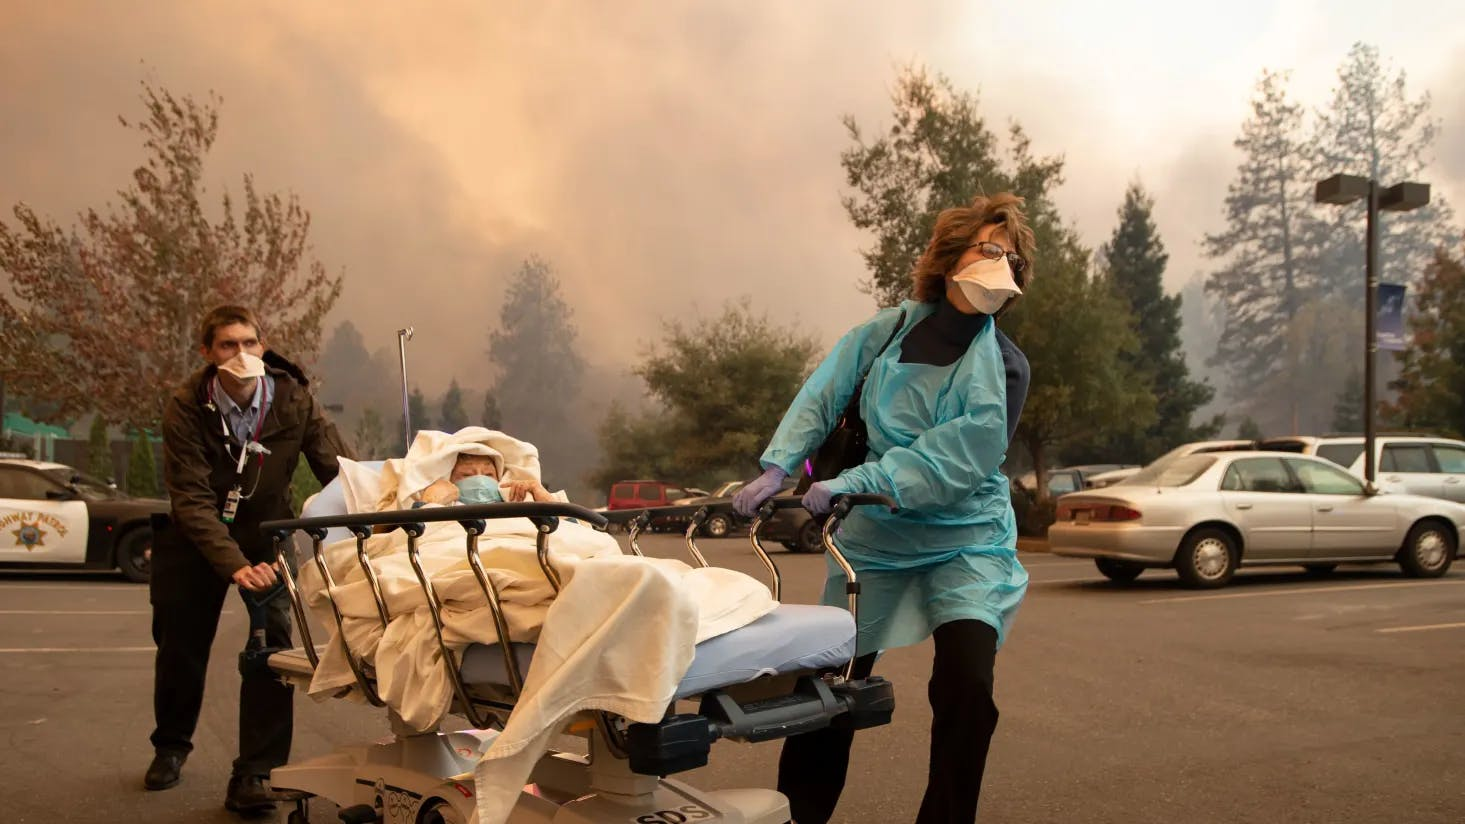 Patients are quickly evacuated from the Feather River Hospital as it burns down during the Camp fire in Paradise, California